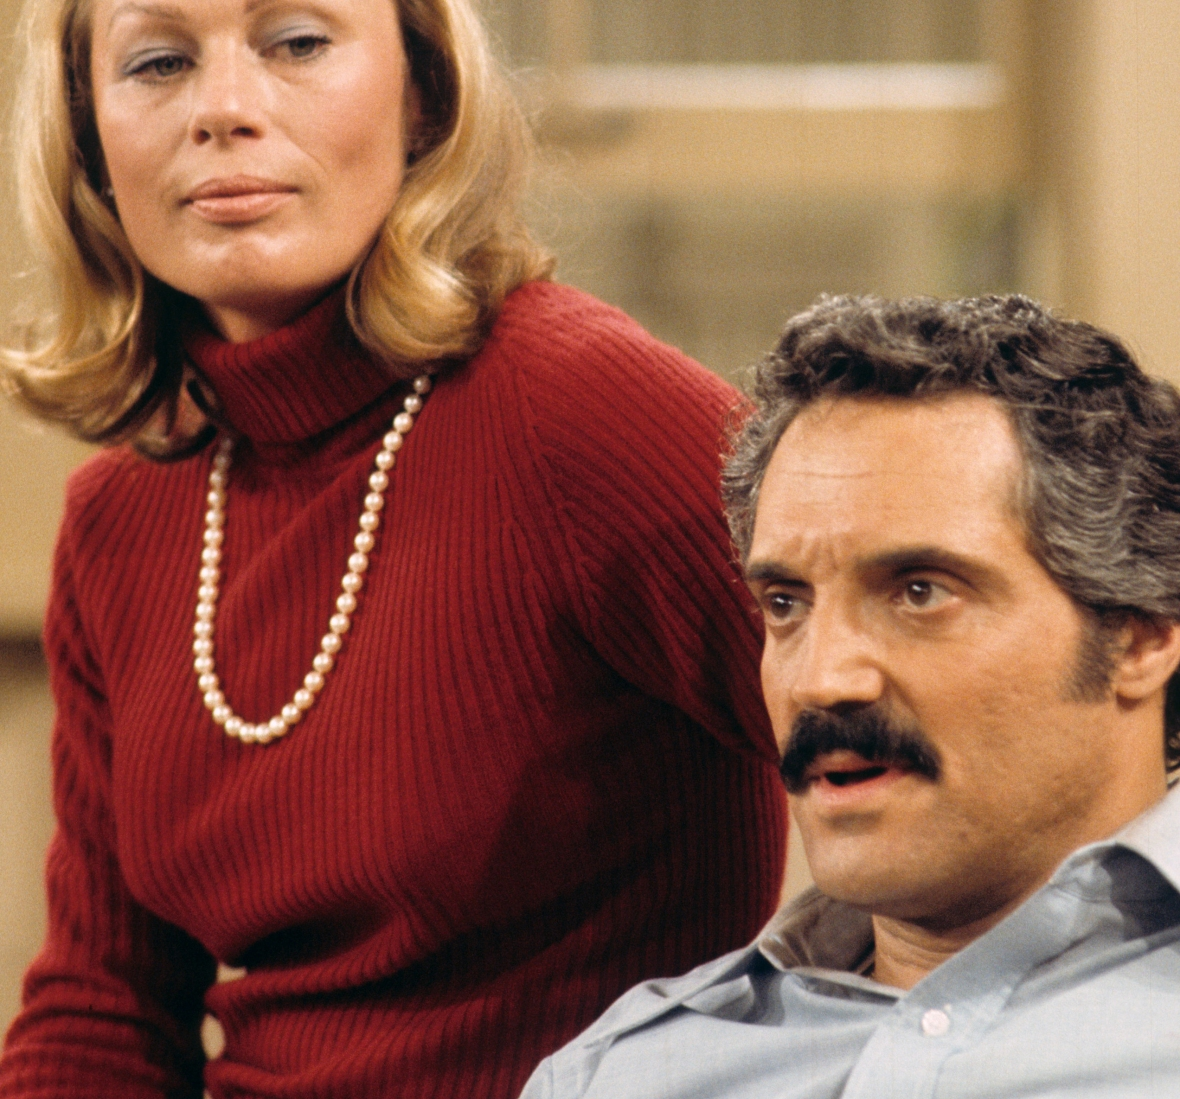 barney miller - life and times of captain barney miller 1